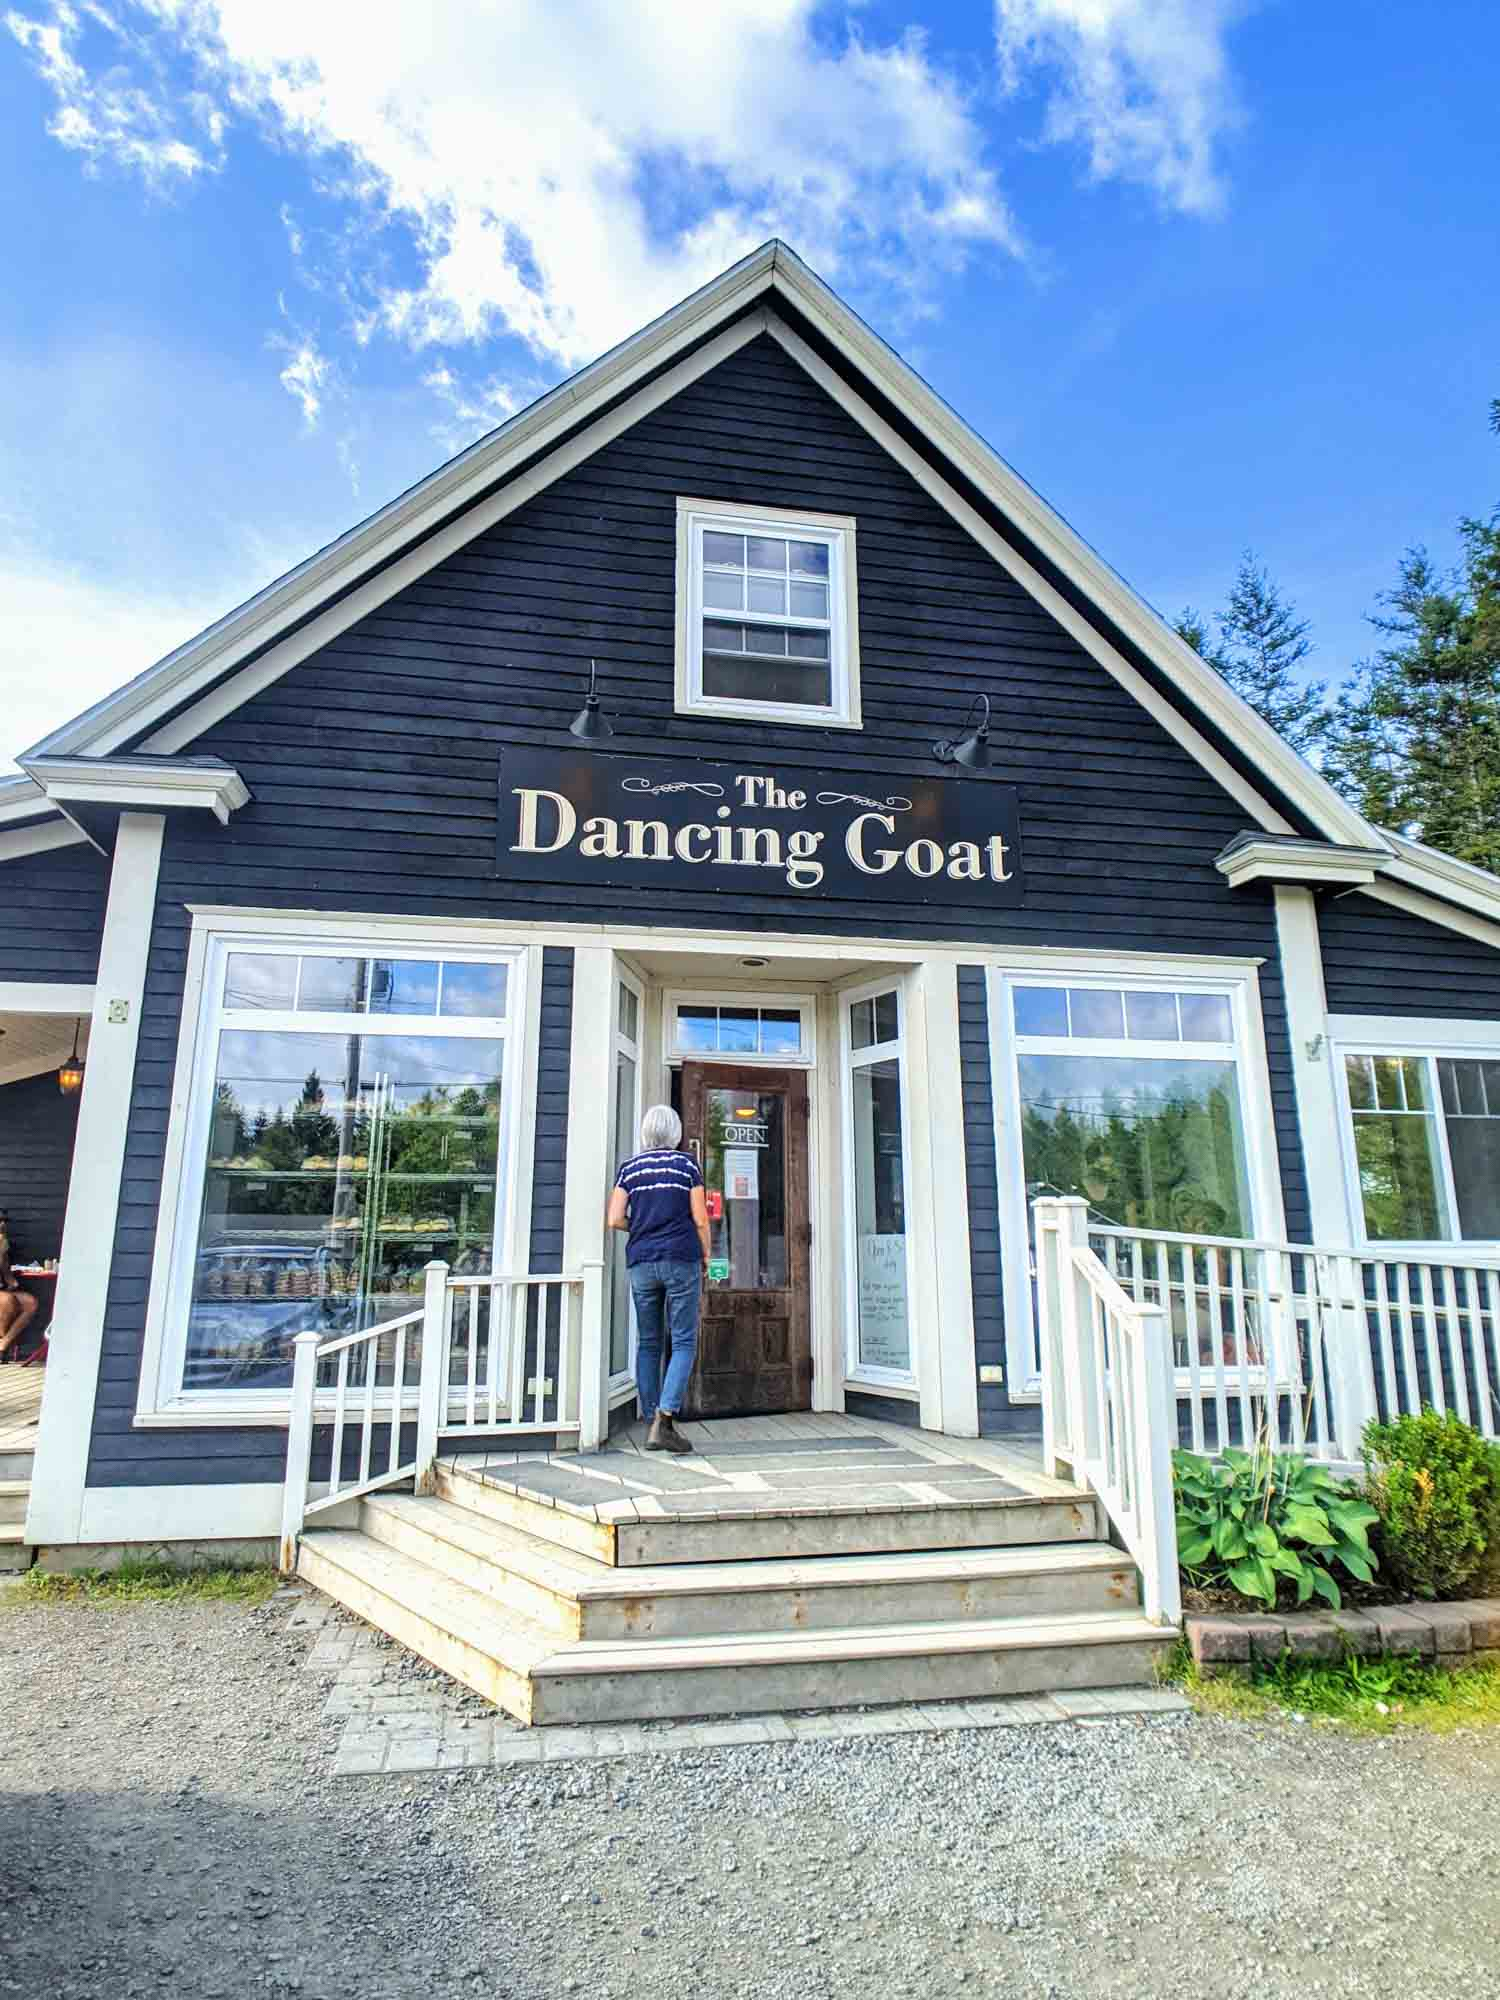 The Dancing Goat bakery exterior in Cape Breton Nova Scotia